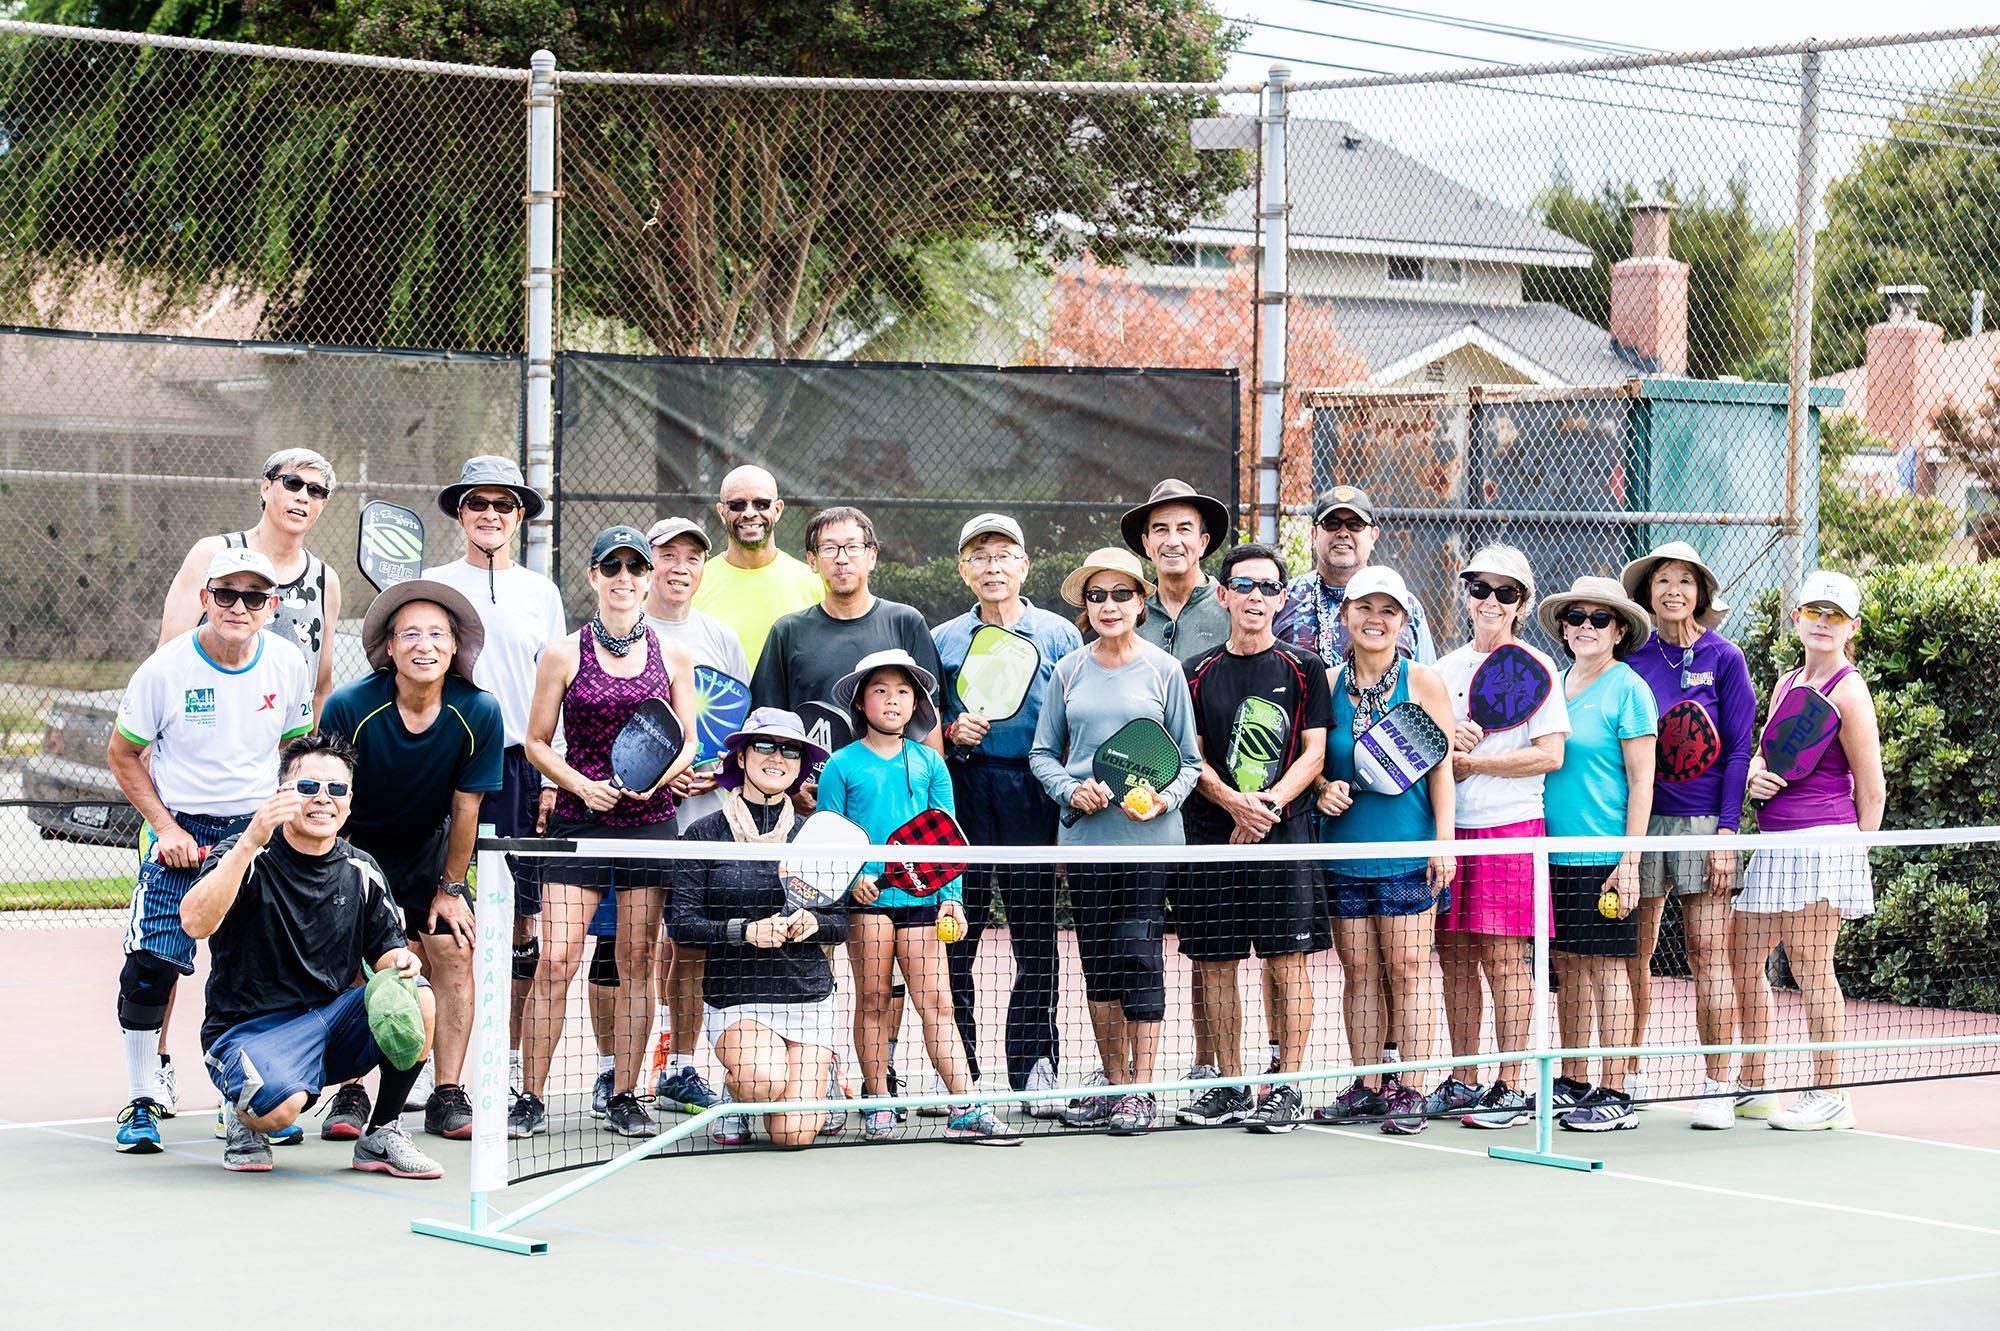 Celebrate Active Aging Week in San Gabriel